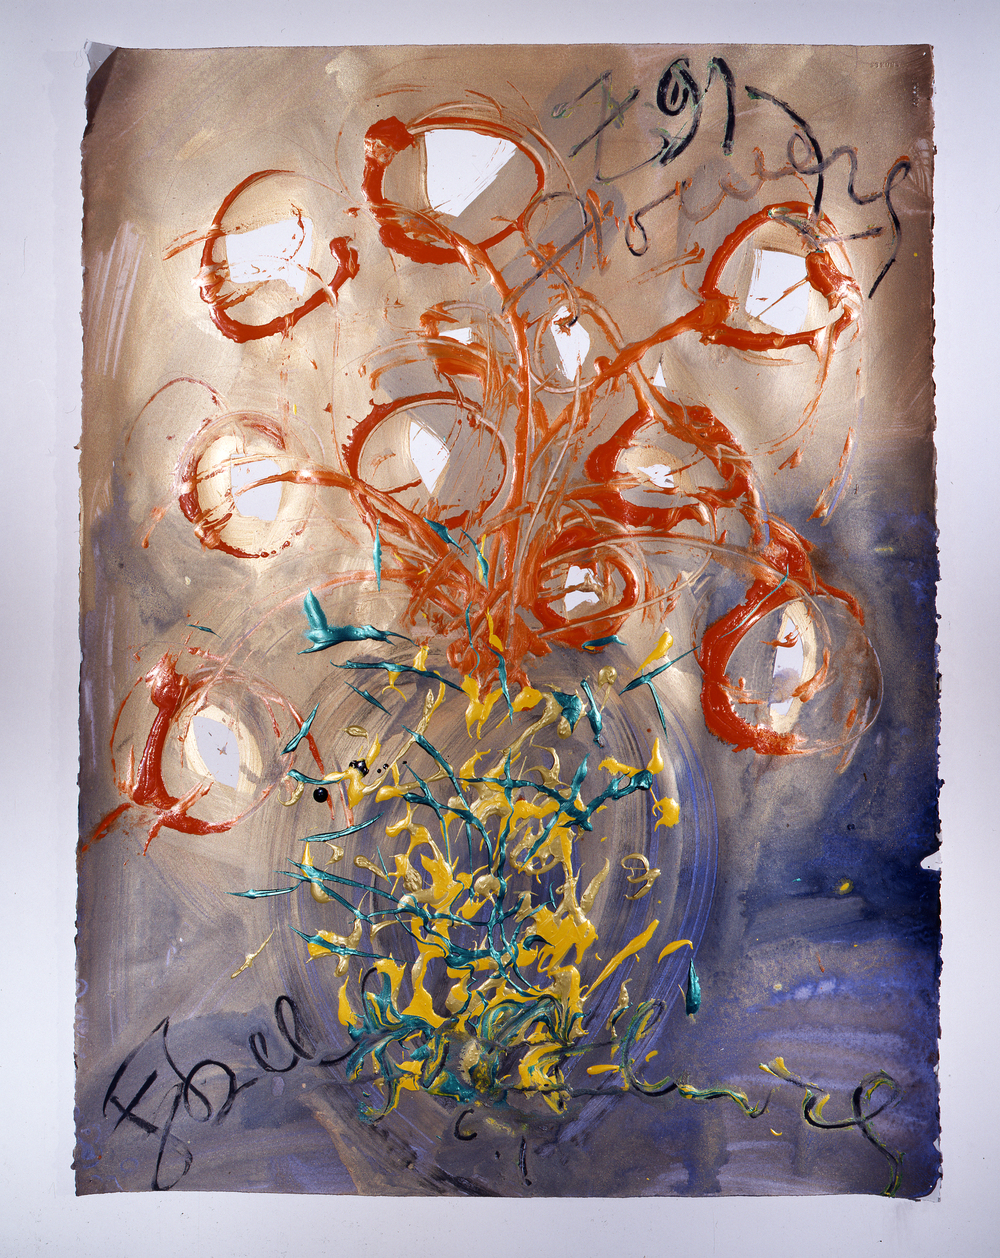 Dale Chihuly,  Ebeltoft Drawing,  (1991, mixed media on paper, 30 x 22 inches), DC.352